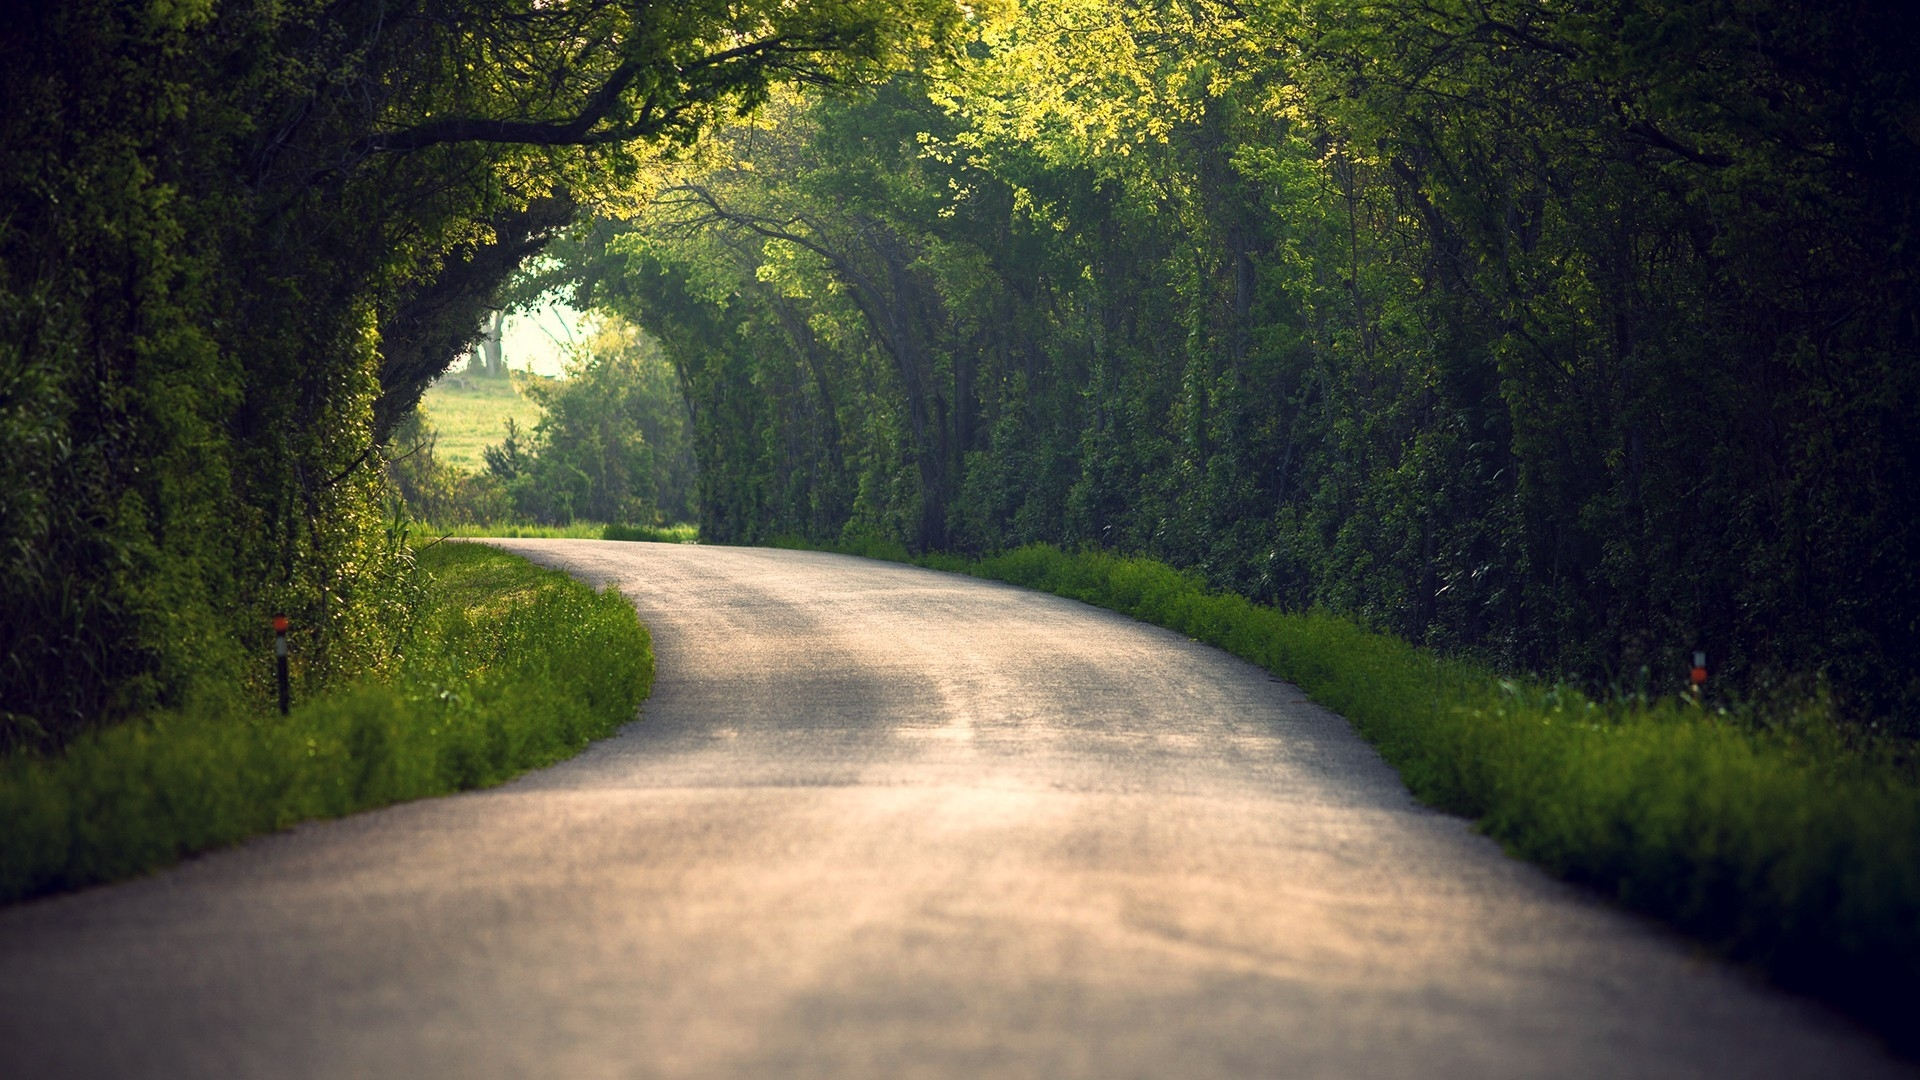 Download Wallpaper 1920x1080 Summer Nature Road Leaves Trees